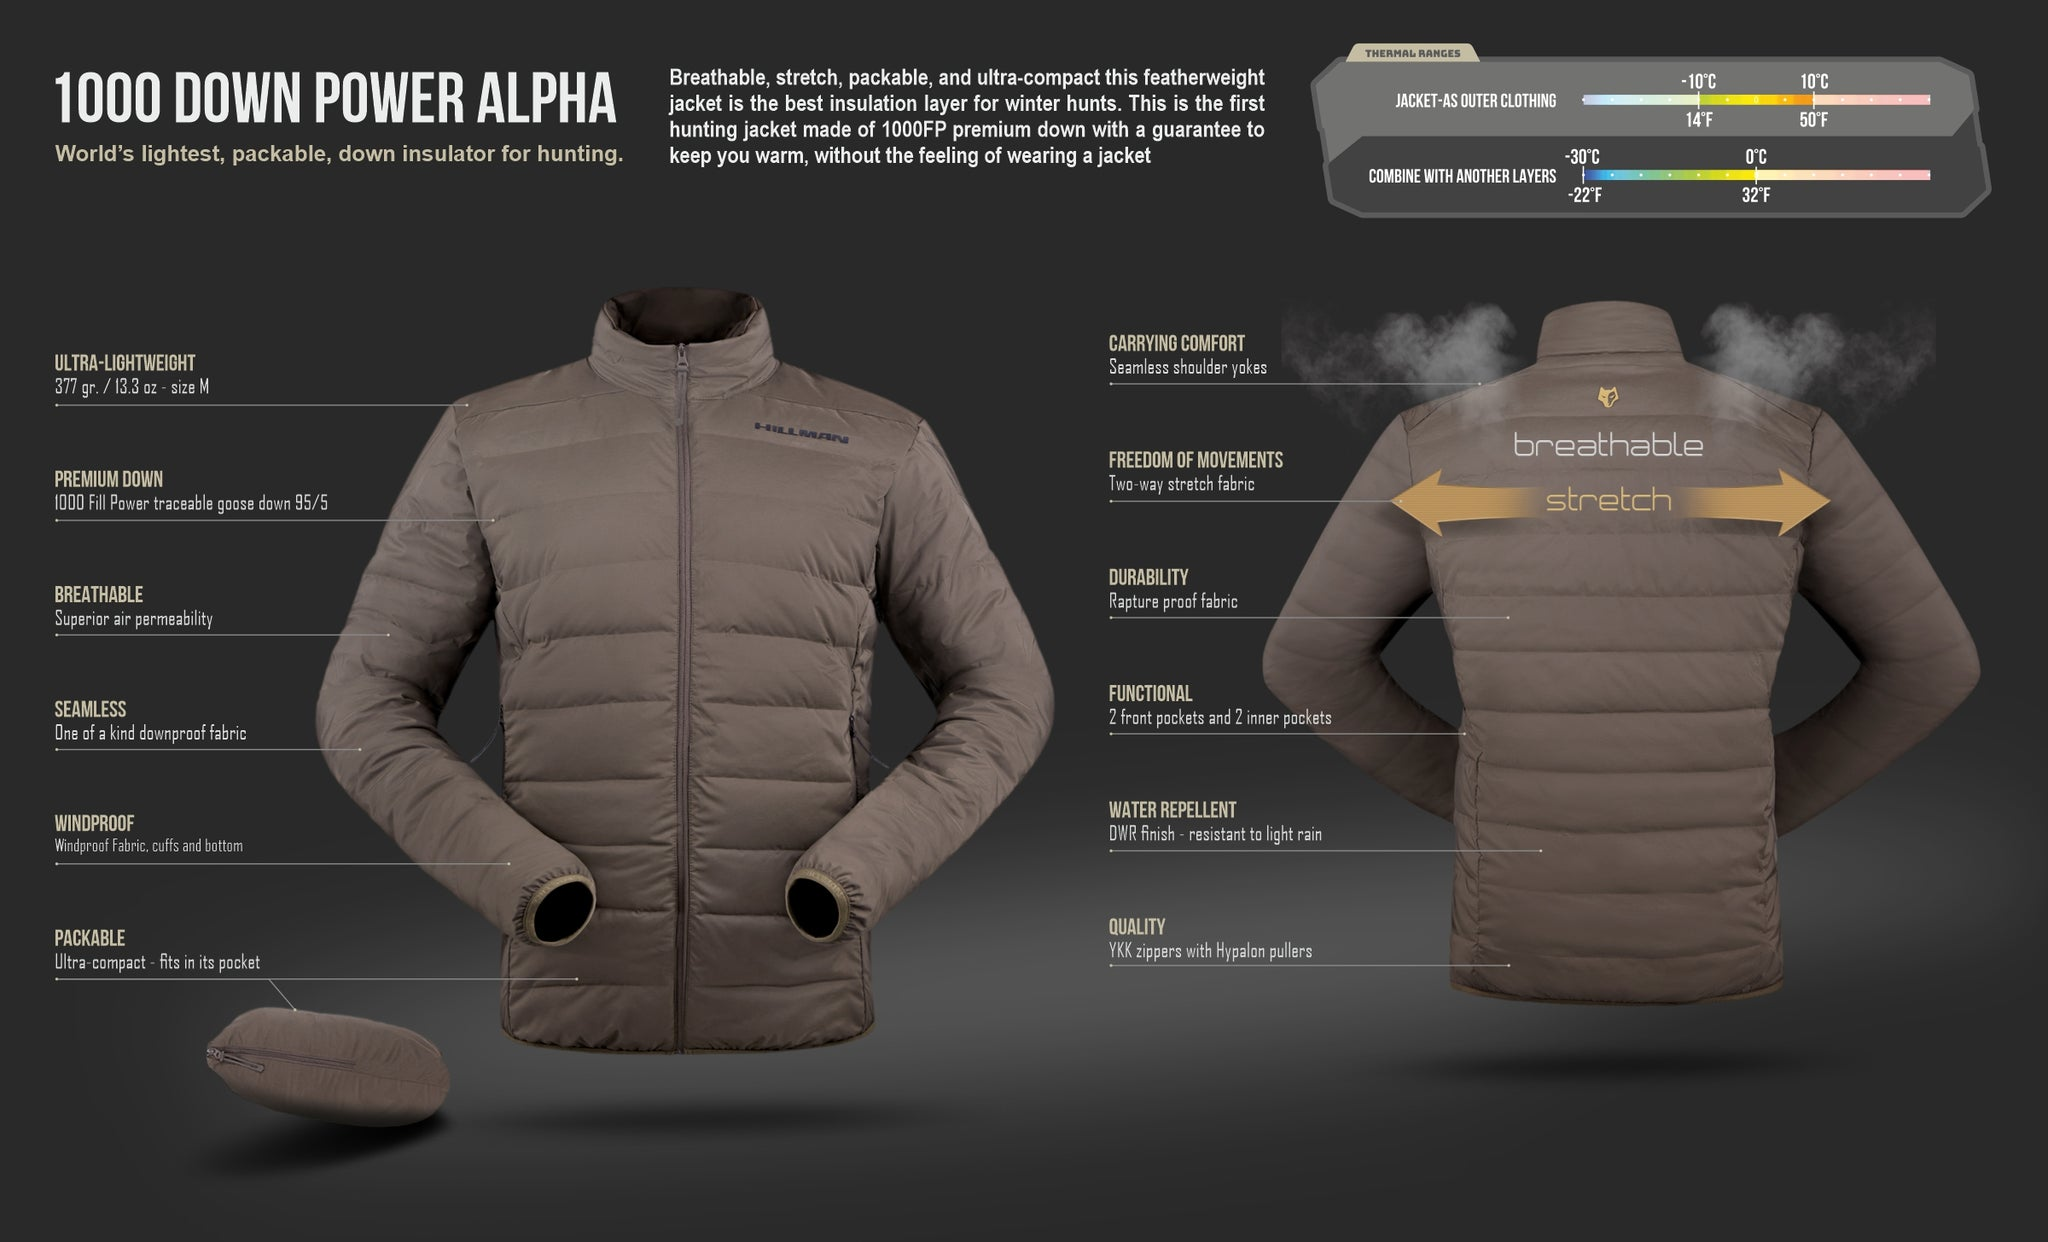 packable down jacket the worlds lightest hunting insulation midlayer